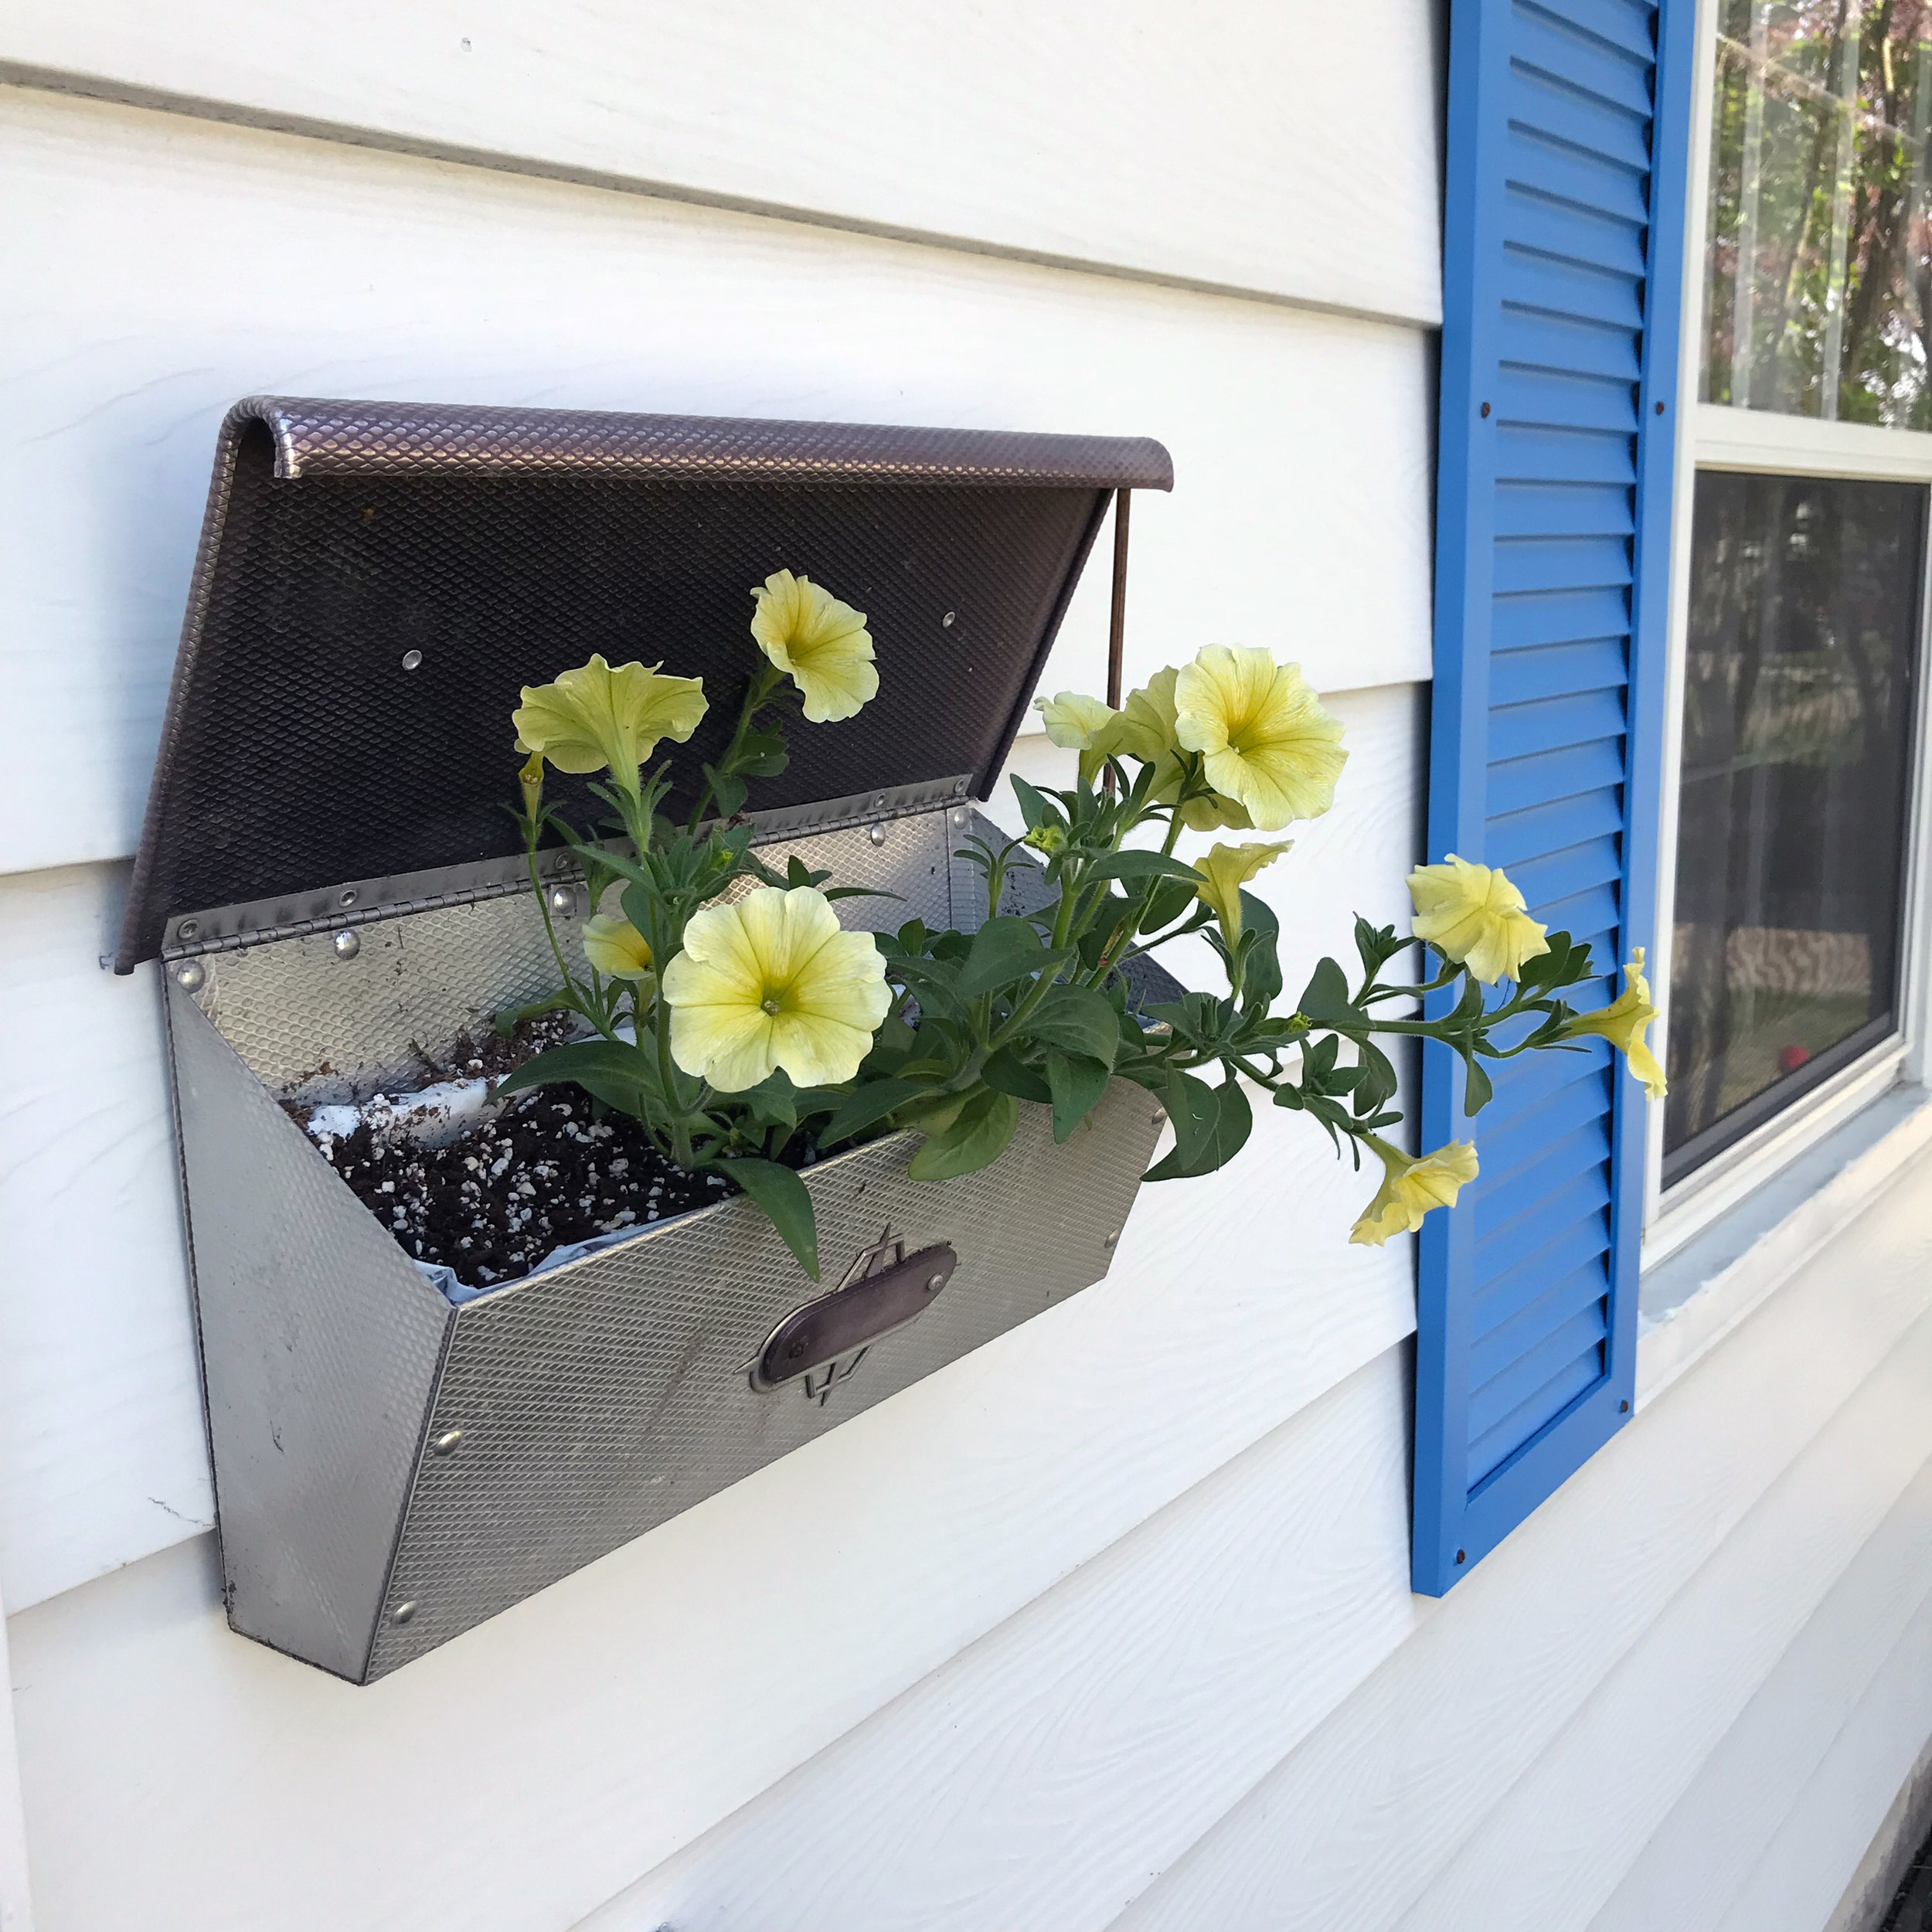 I planted Yellow Petunias in the Mailbox beside my Blue Shutters and it Brings Me Joy